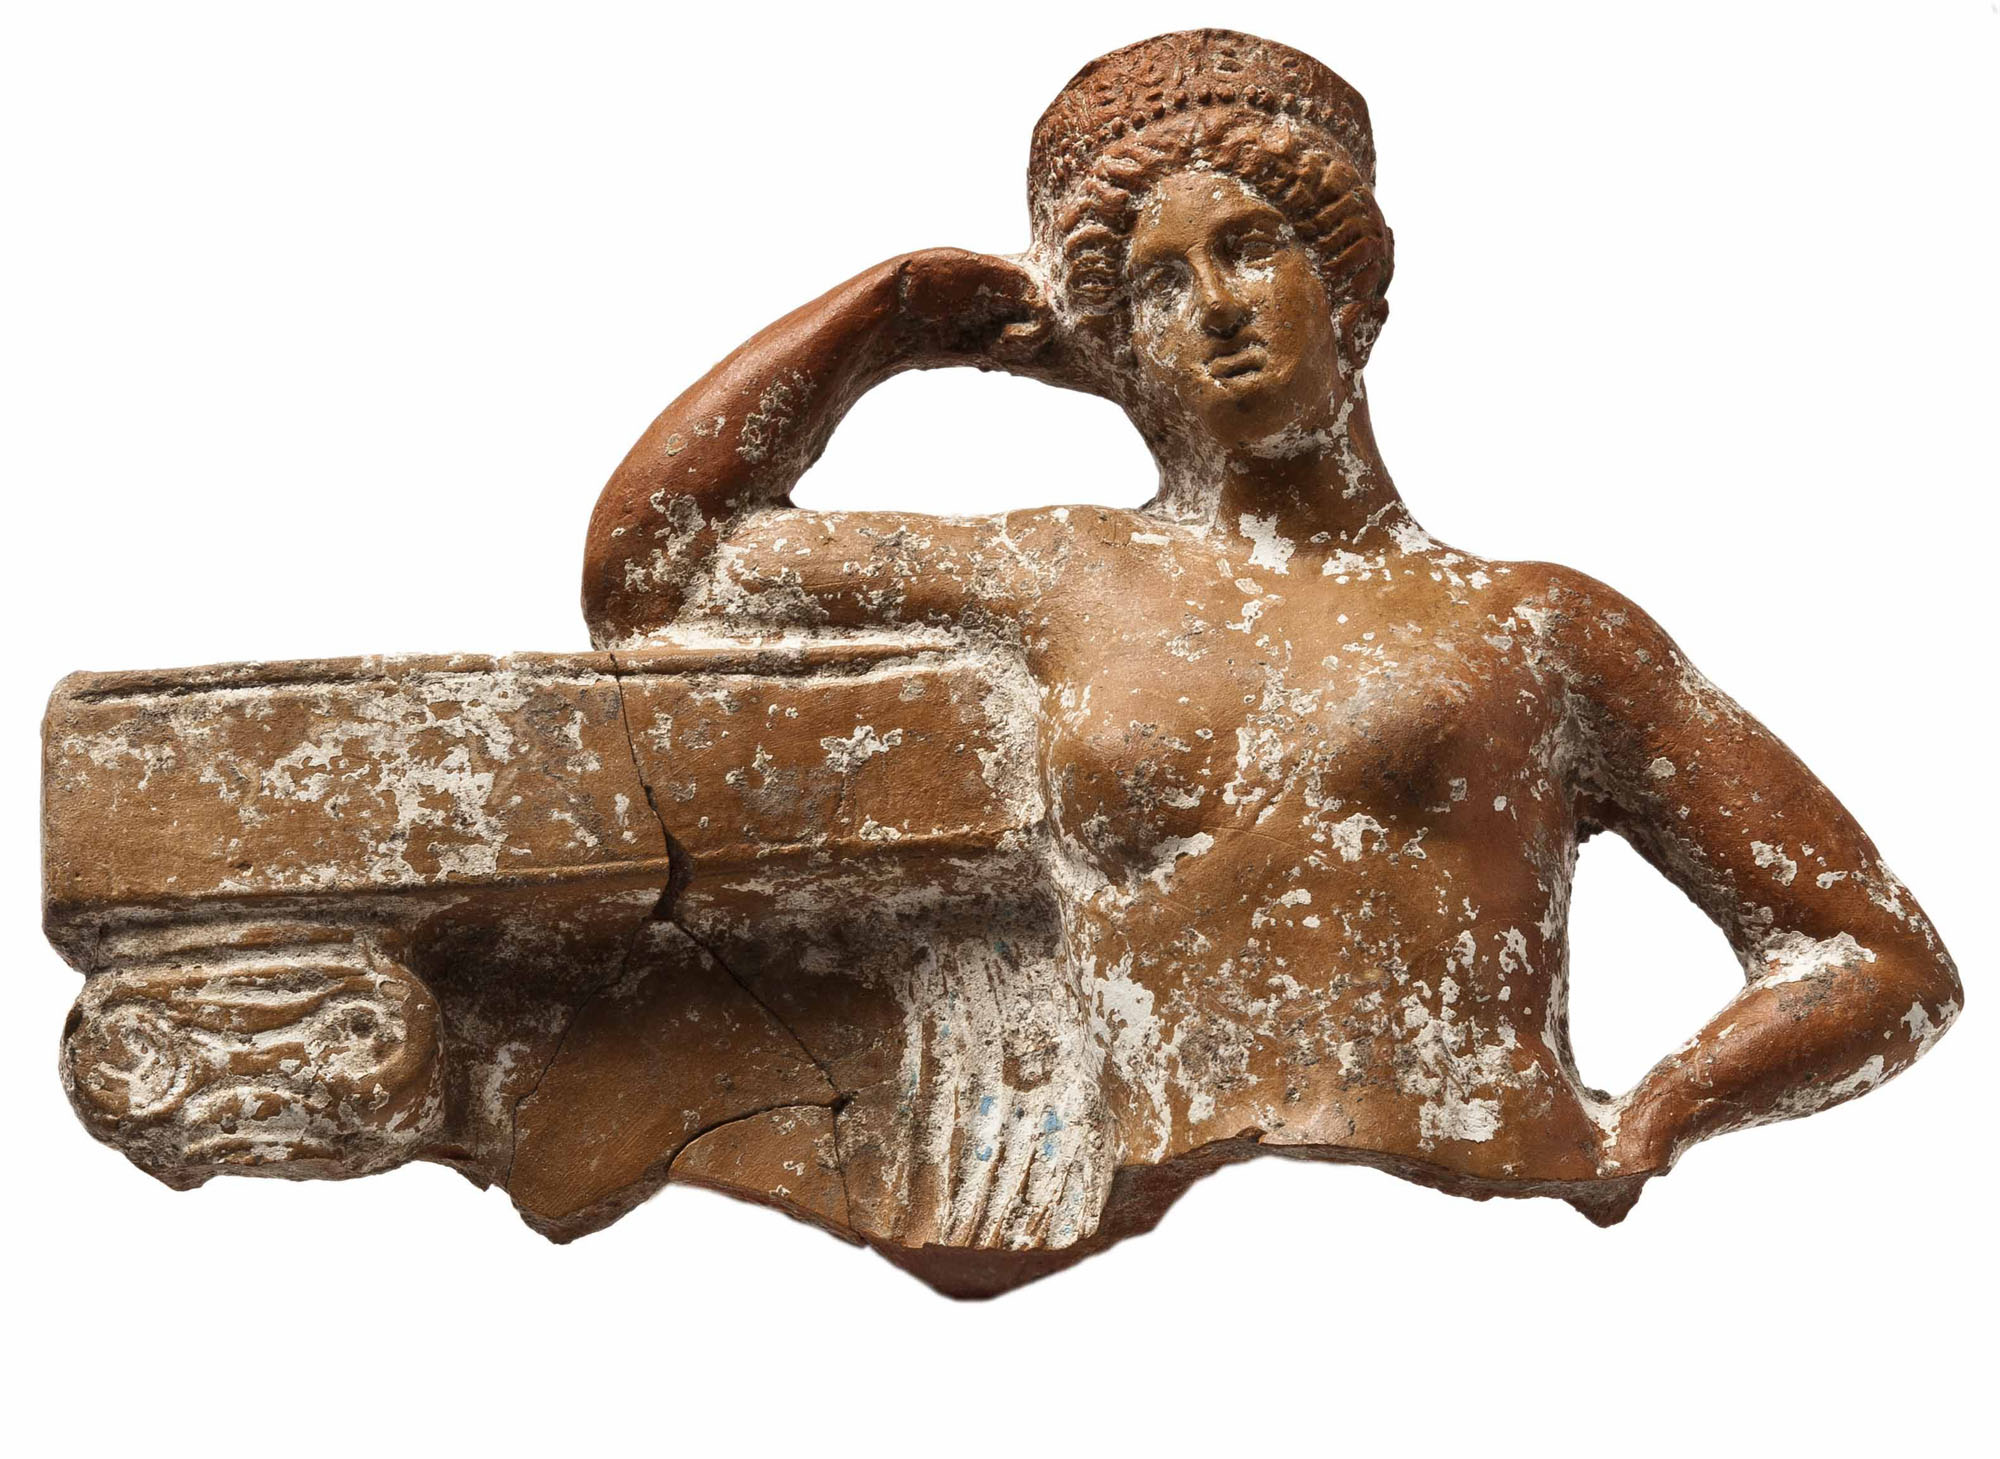 Terracotta figurine of Aphrodite, 4th century BC. From Kition-Kathari.